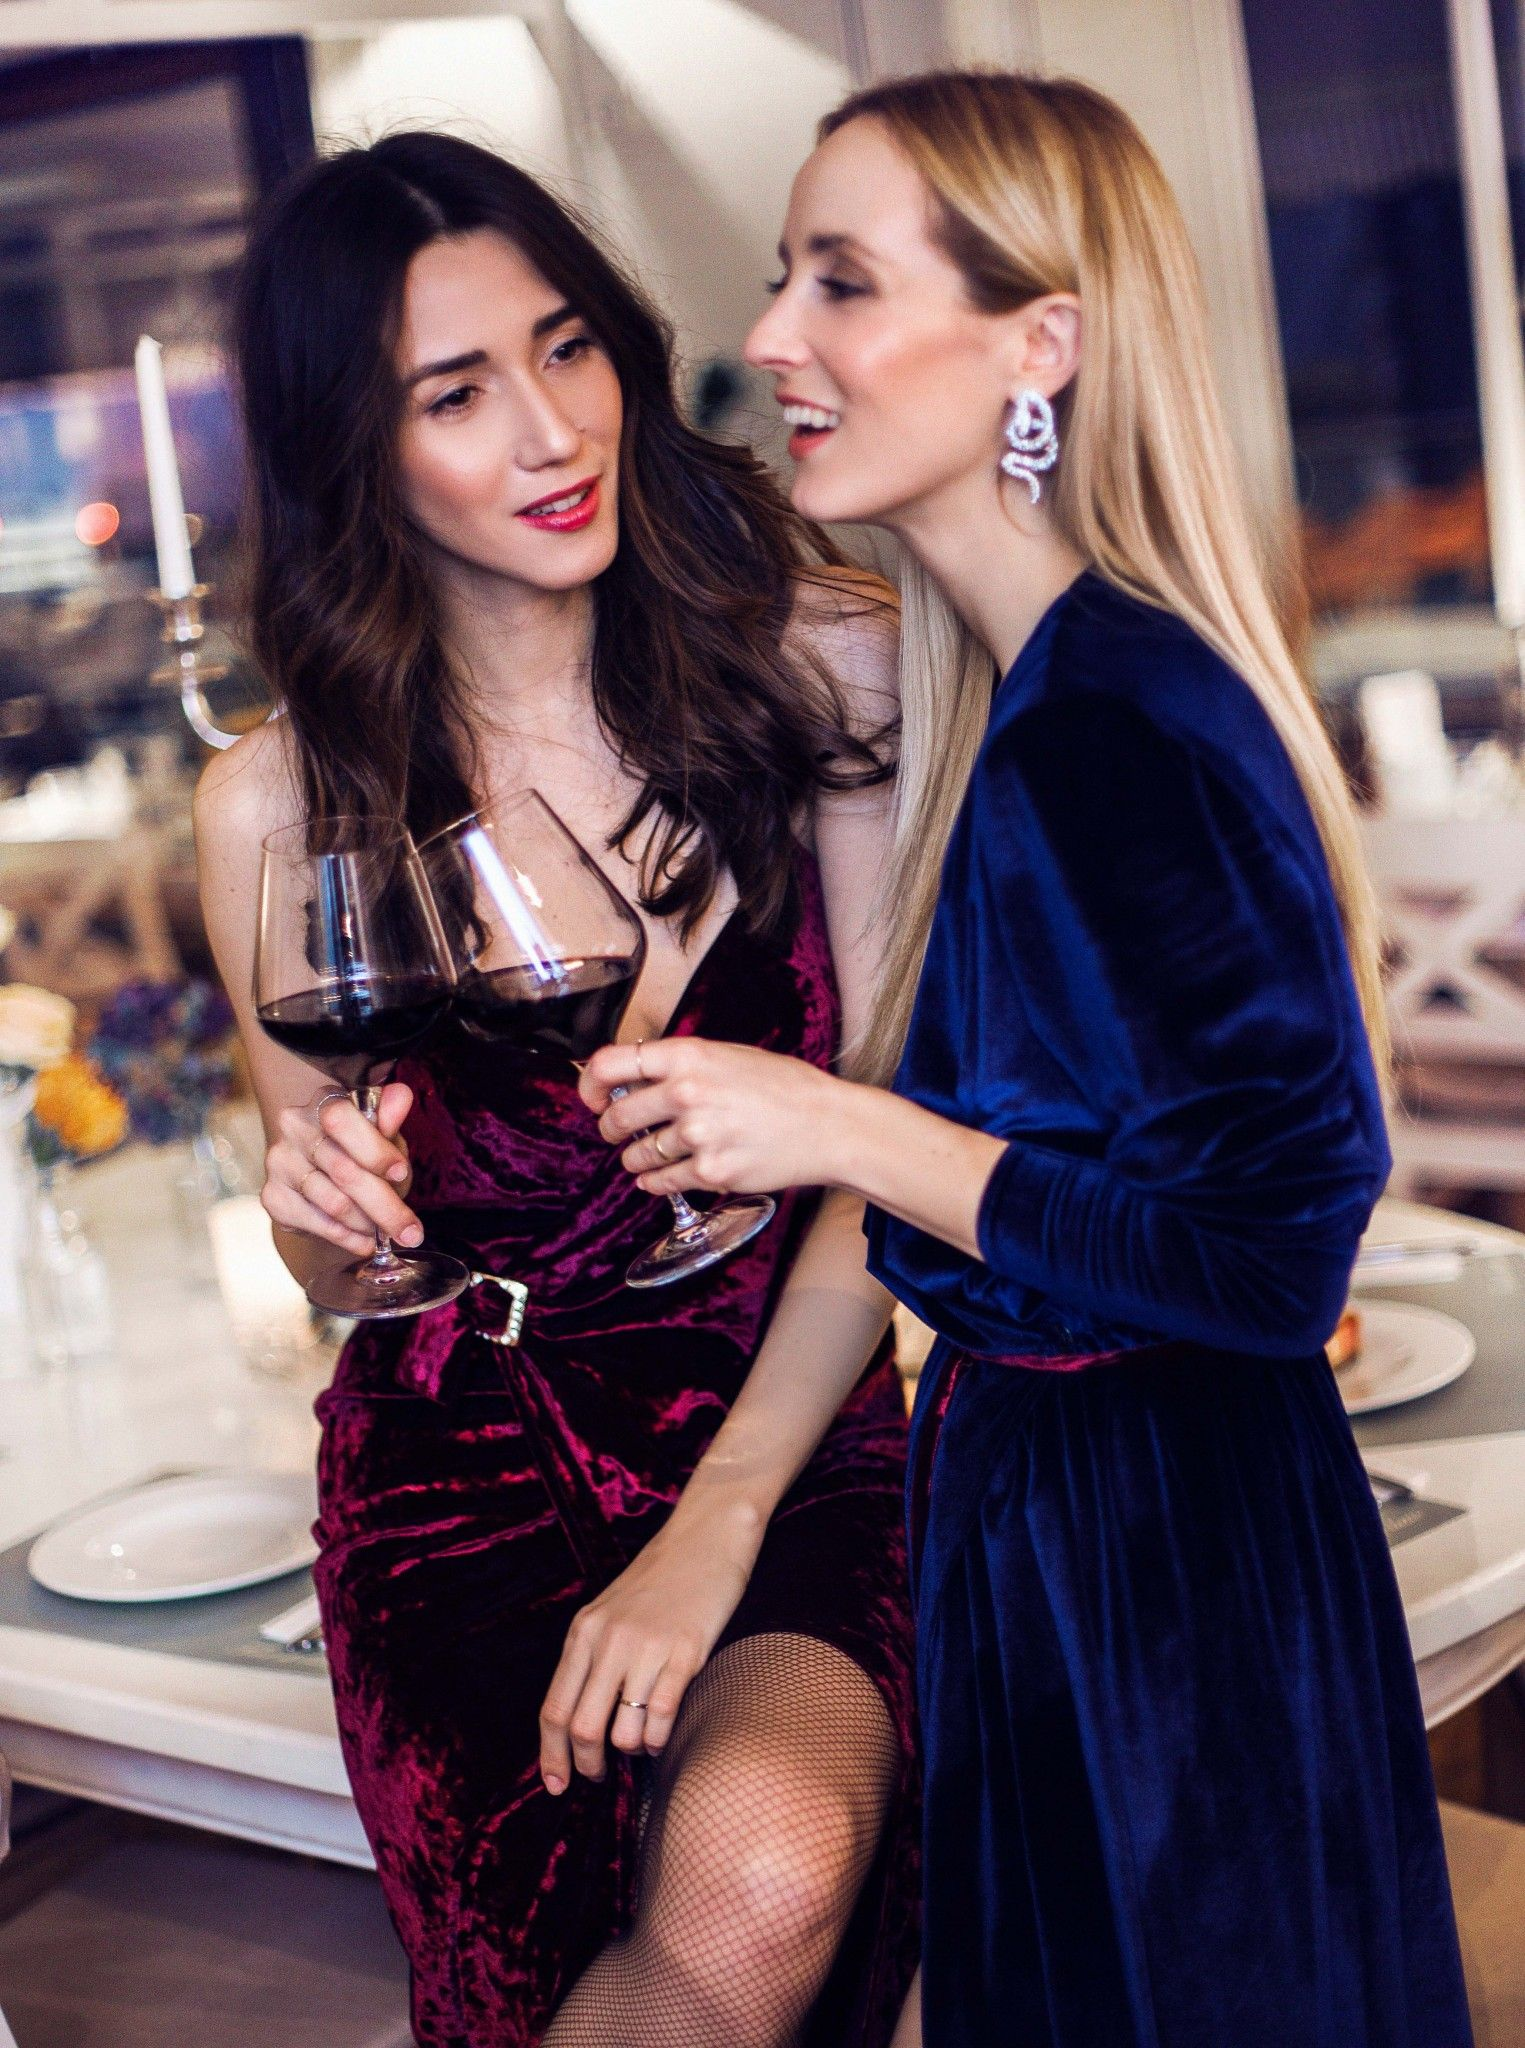 4fior_di_latte_fabulous_muses_diana_enciu_alina_tanasa_fashion_blog_christmas_dinner